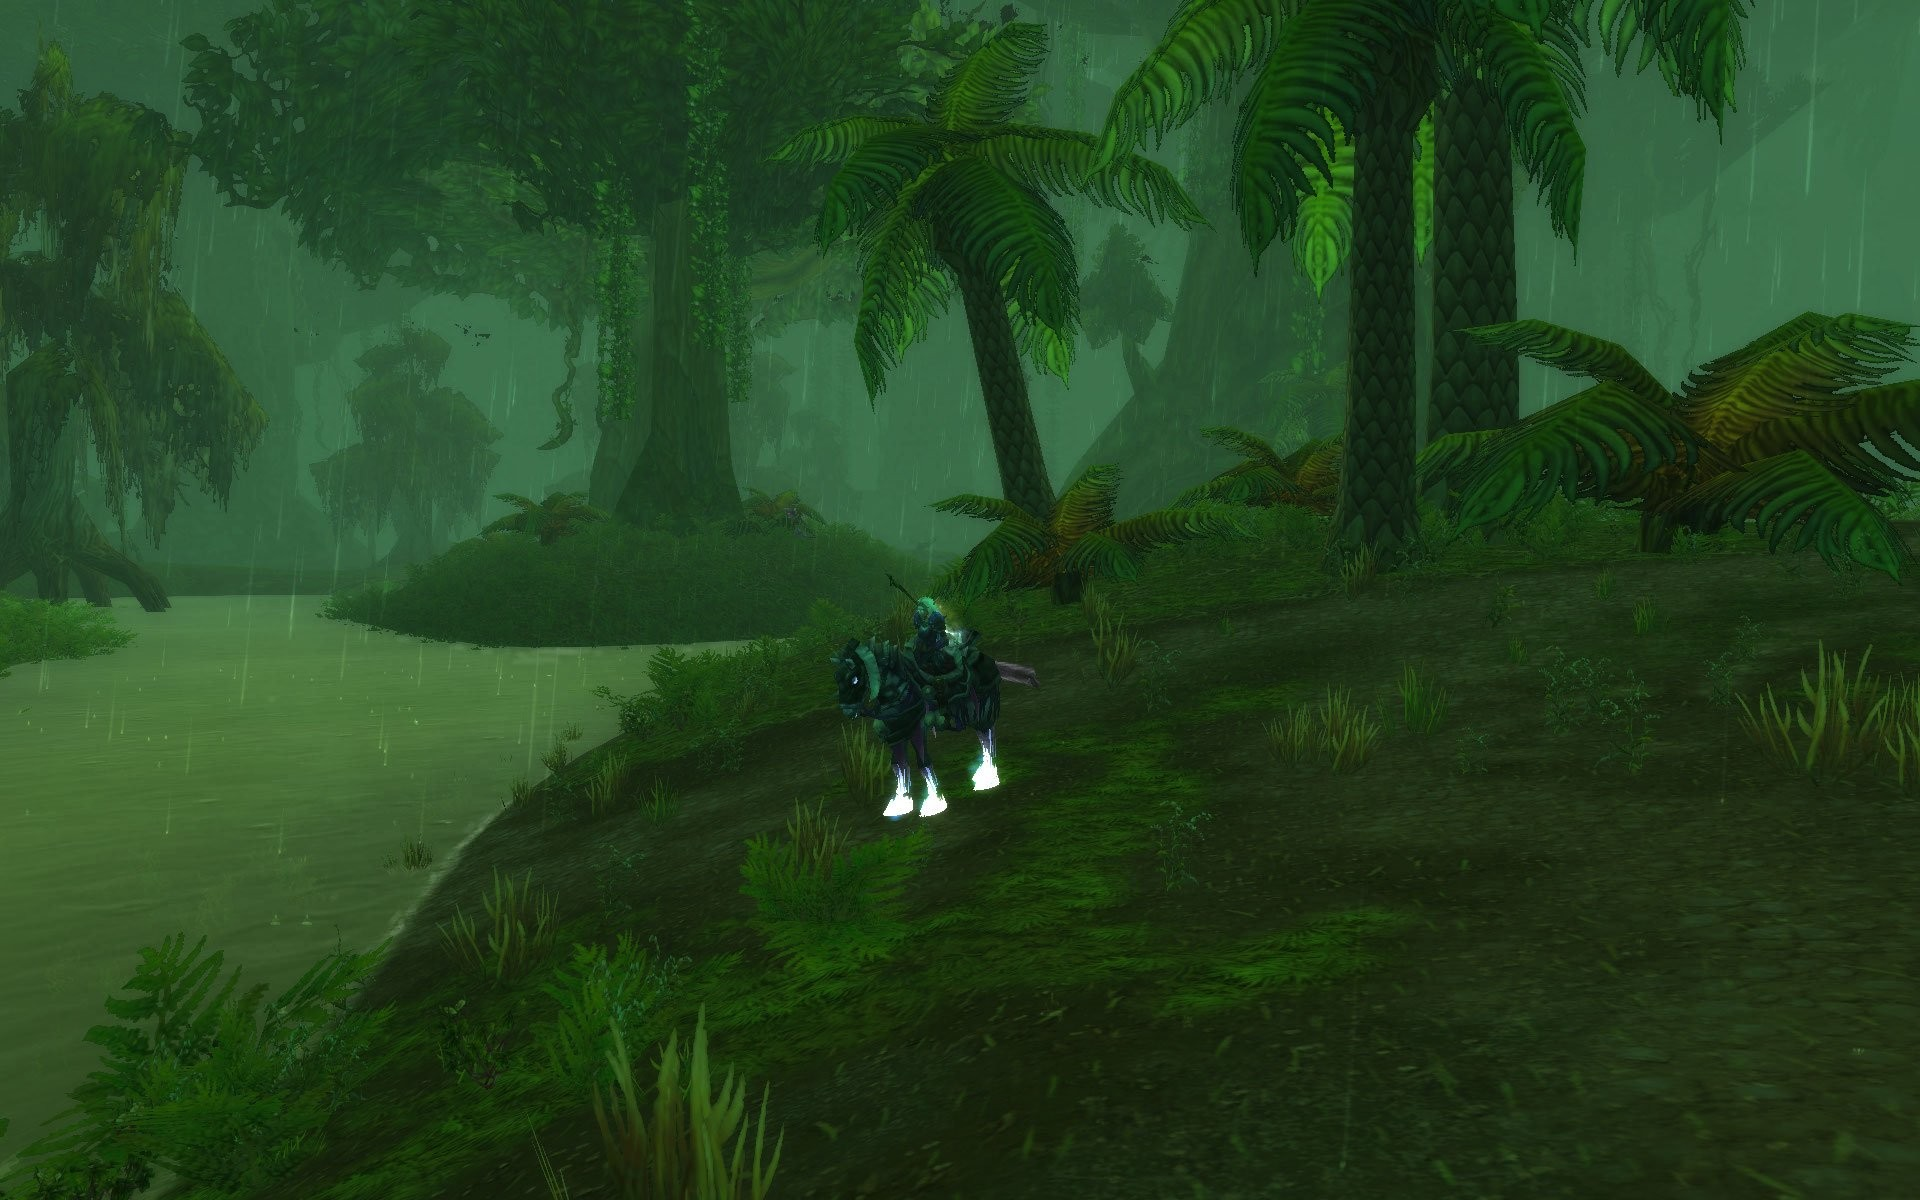 World of Warcraft - Wet, soggy trek through Un Goro Crater  :(